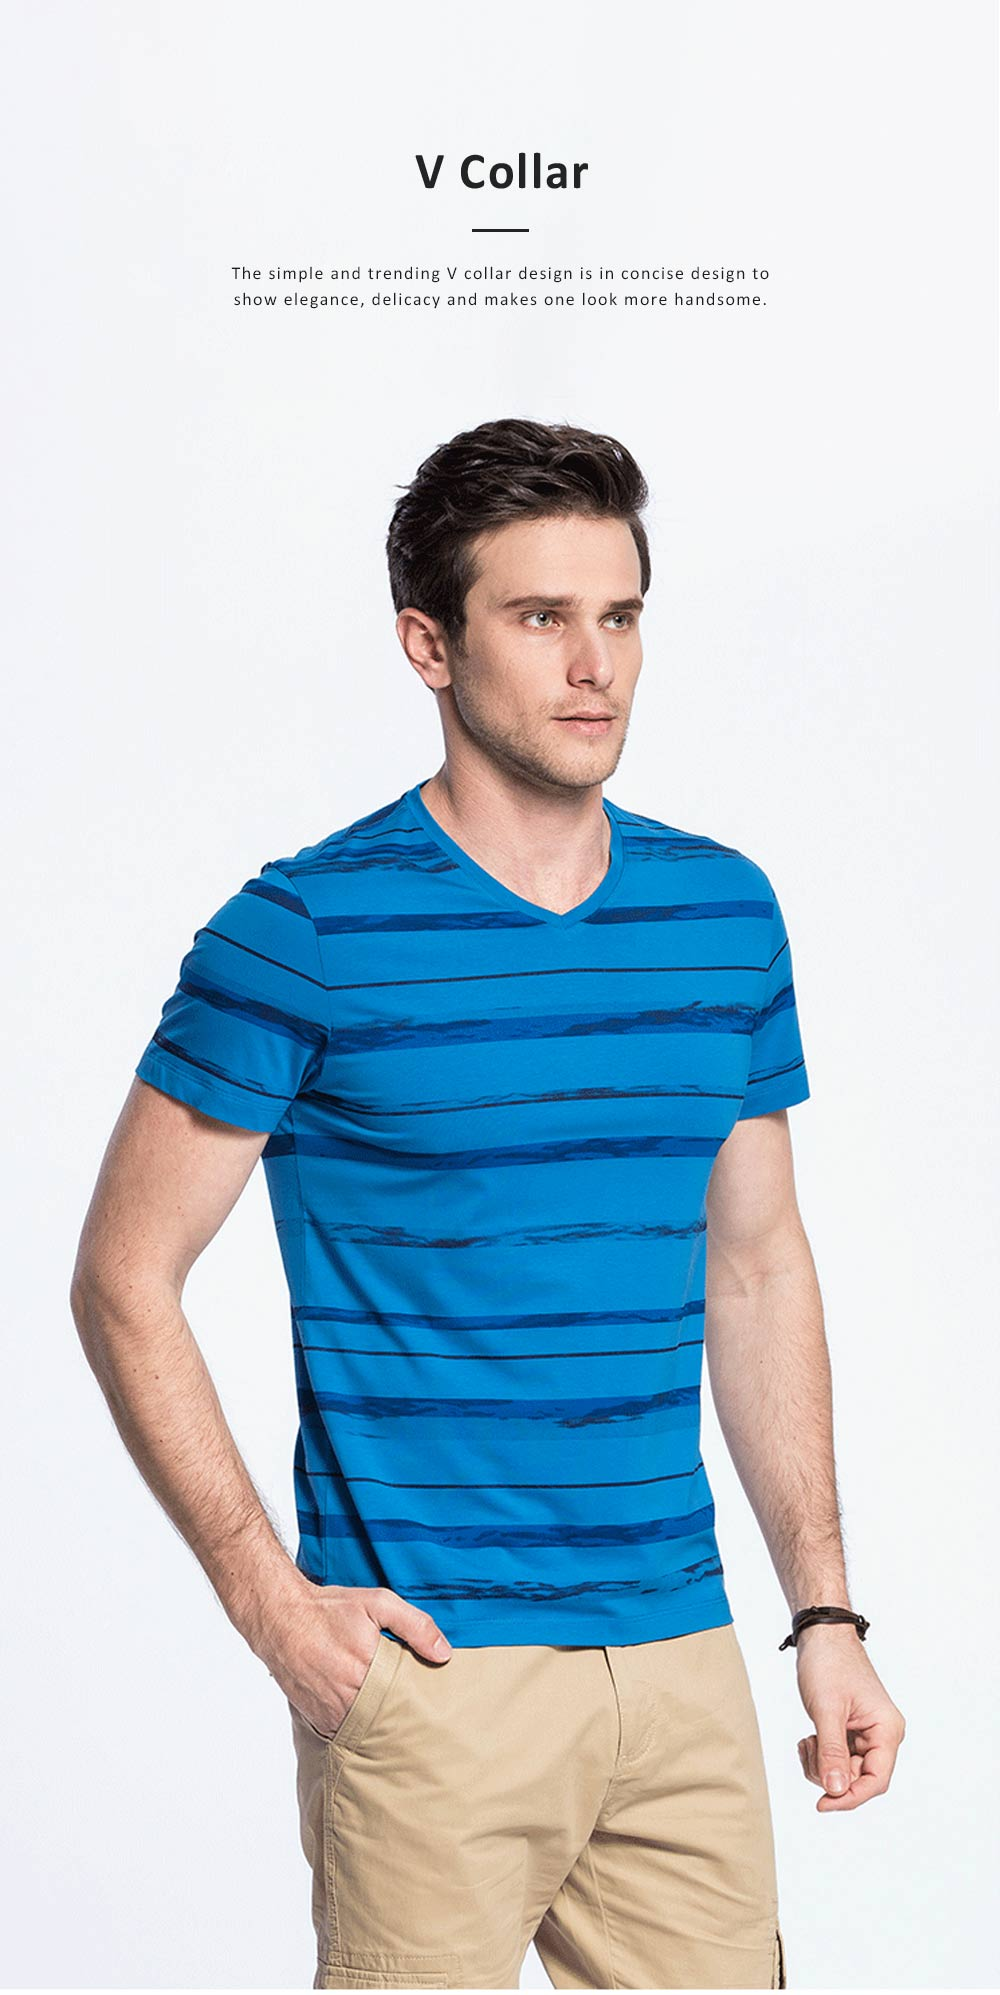 Stripe-designed V-collar T-shirt, Summer Casual Style Short Sleeve Tops, Breathable Gentleman Wear Men's Tops 4